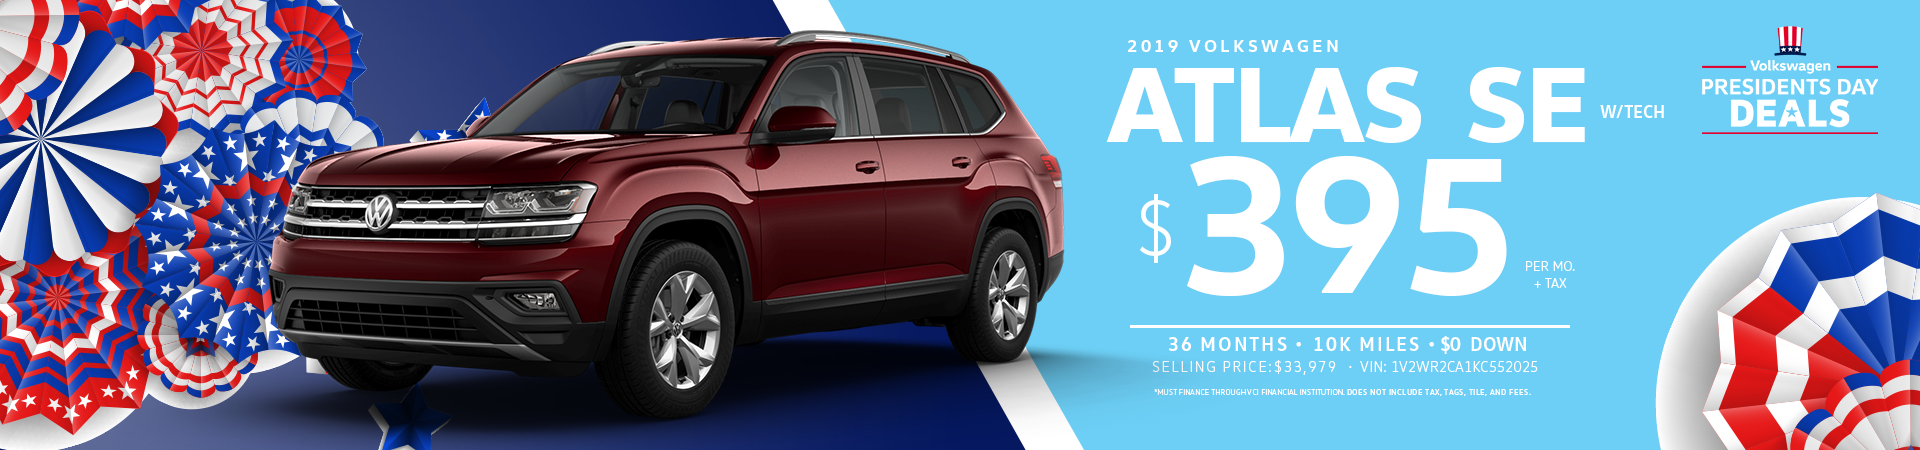 Lease a 2019 Volkswagen Atlas SE for $395 a month